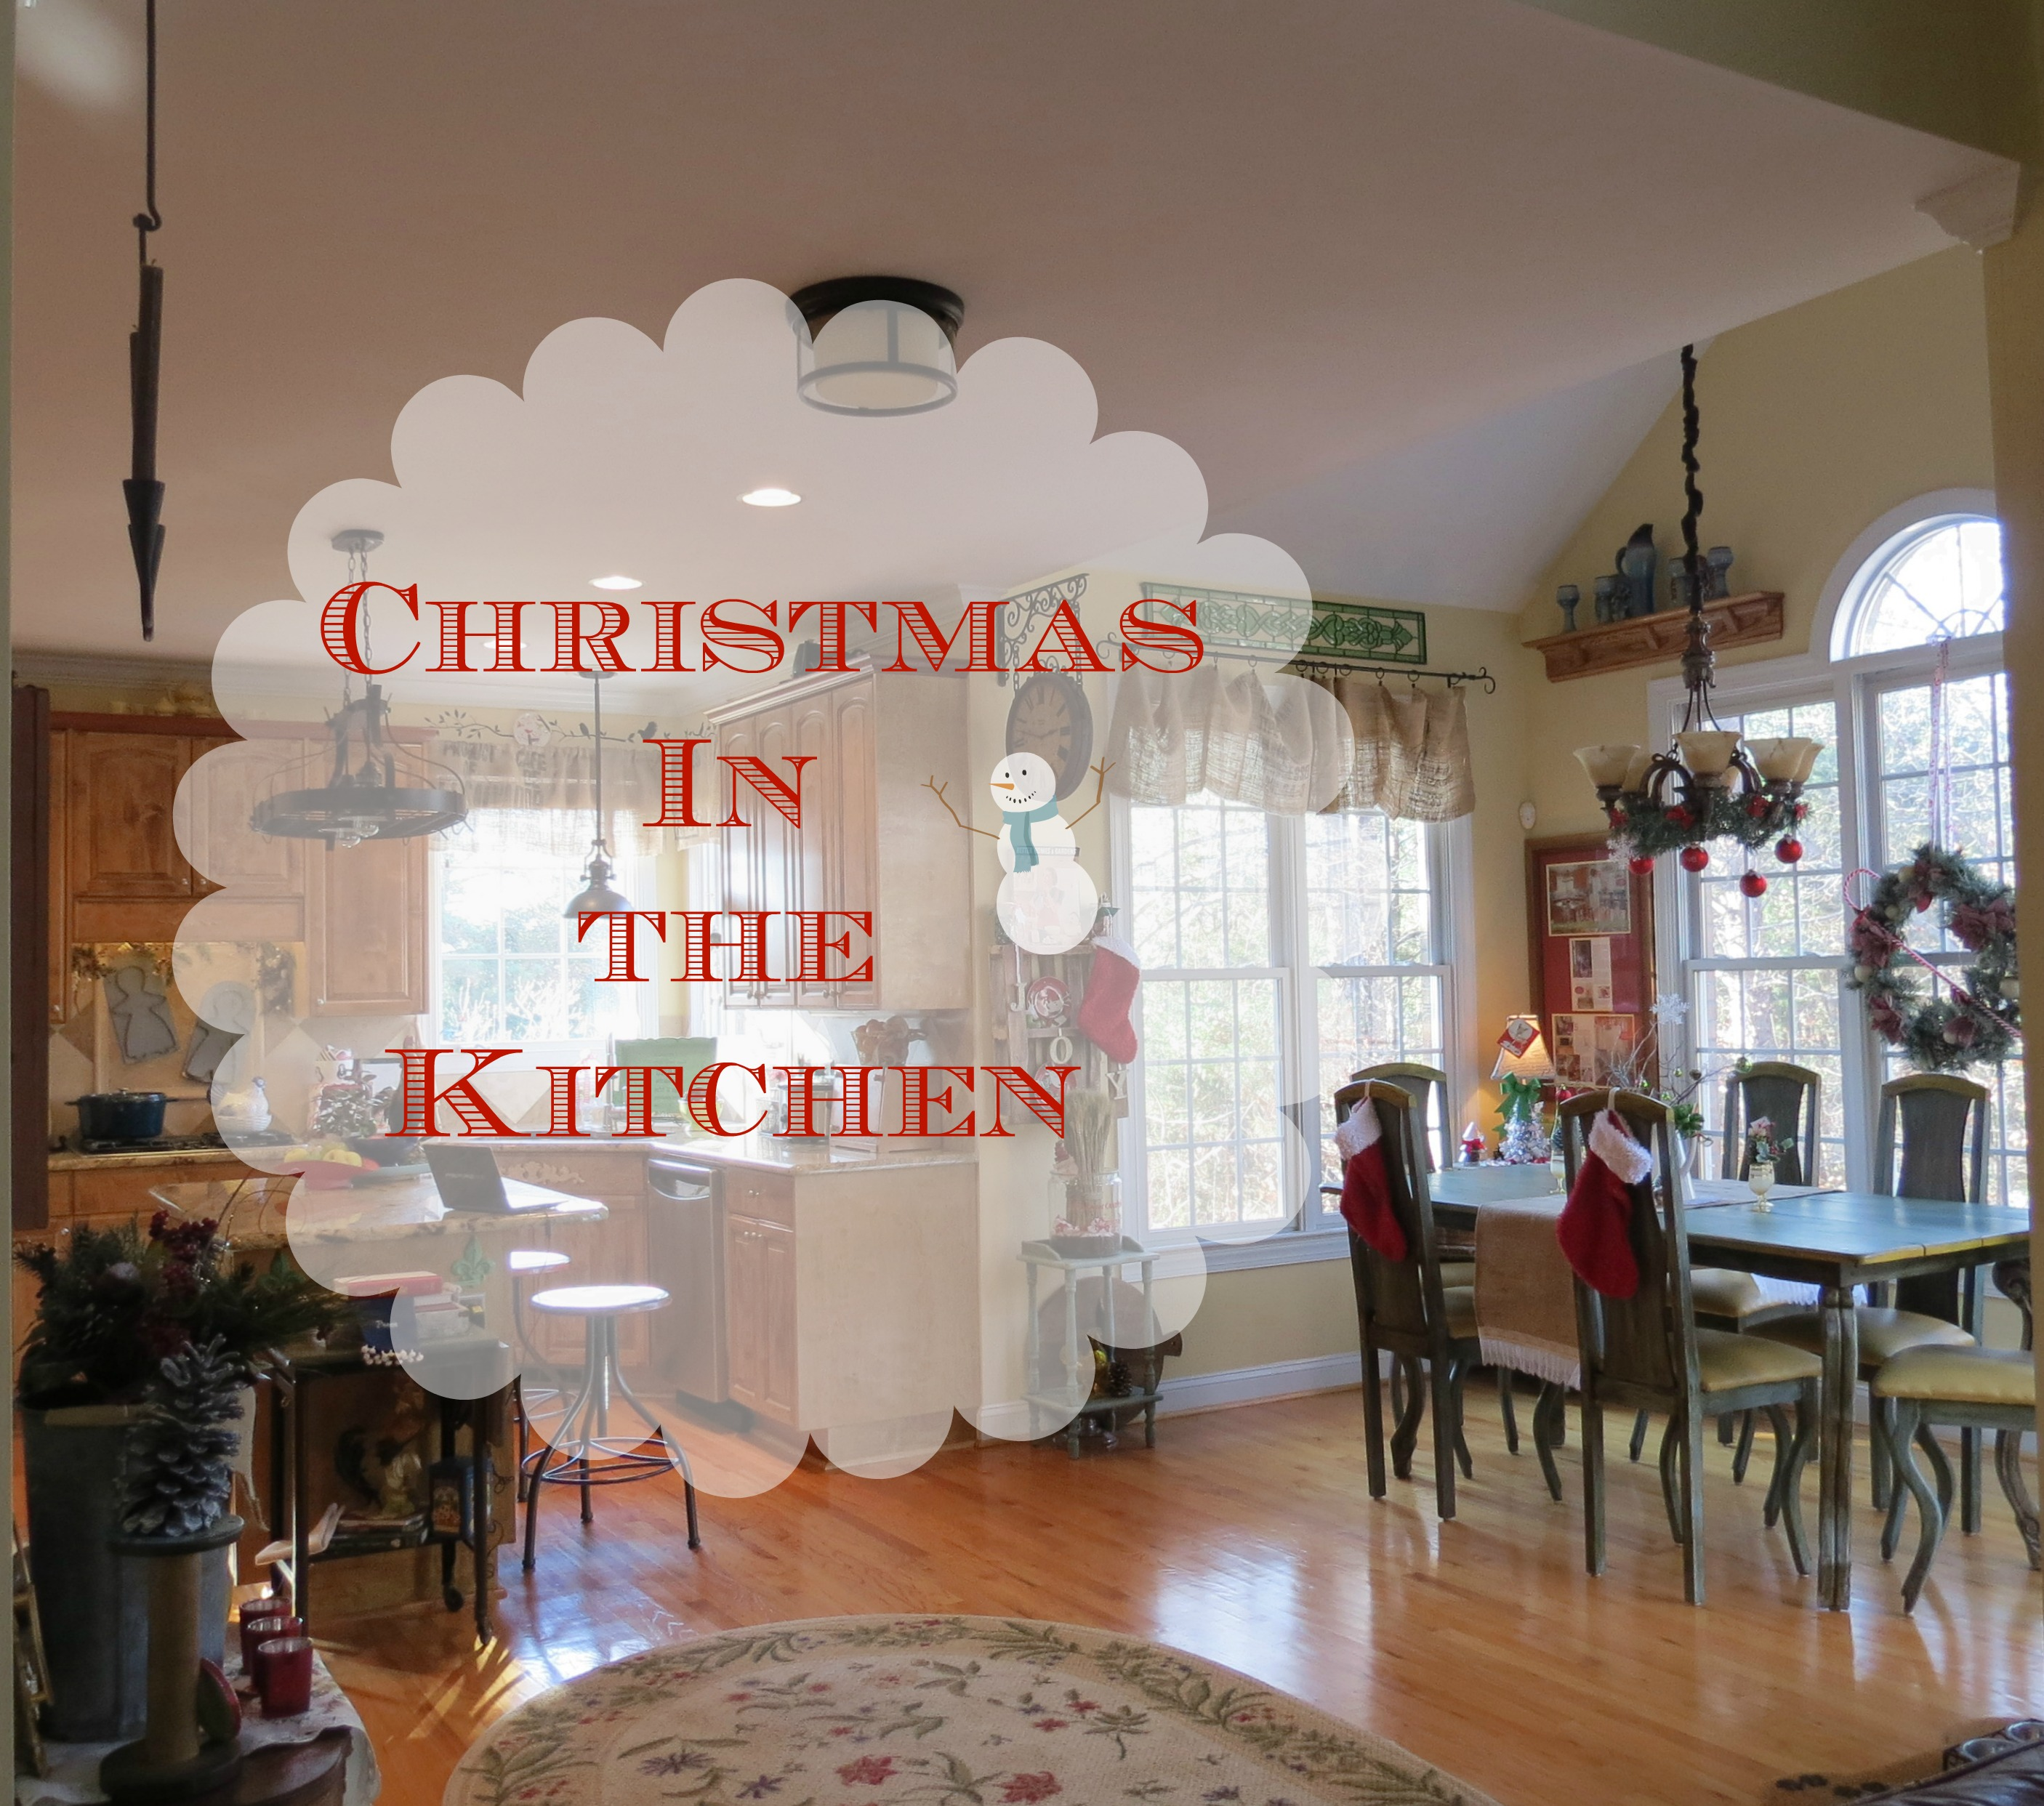 90 percent of our kitchen decor - Christmas Kitchen Decor